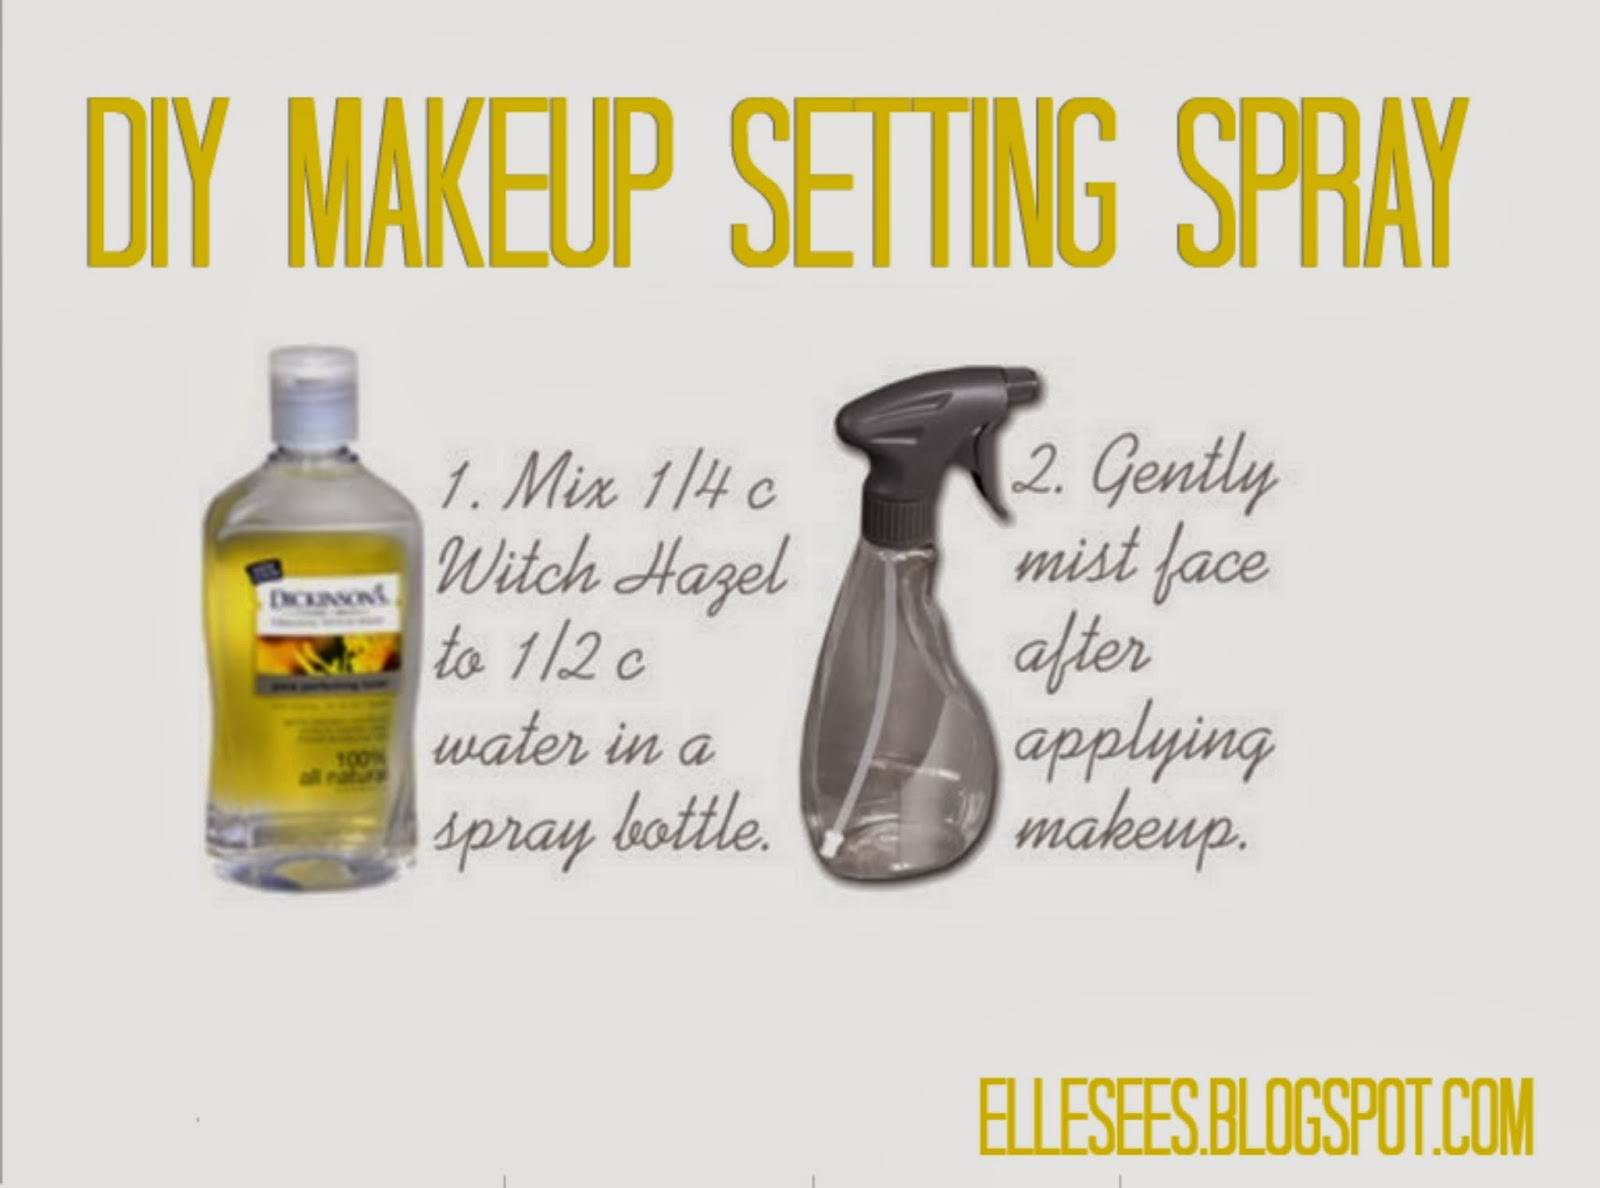 diy eyeshadow setting spray sees in atlanta diy makeup setting